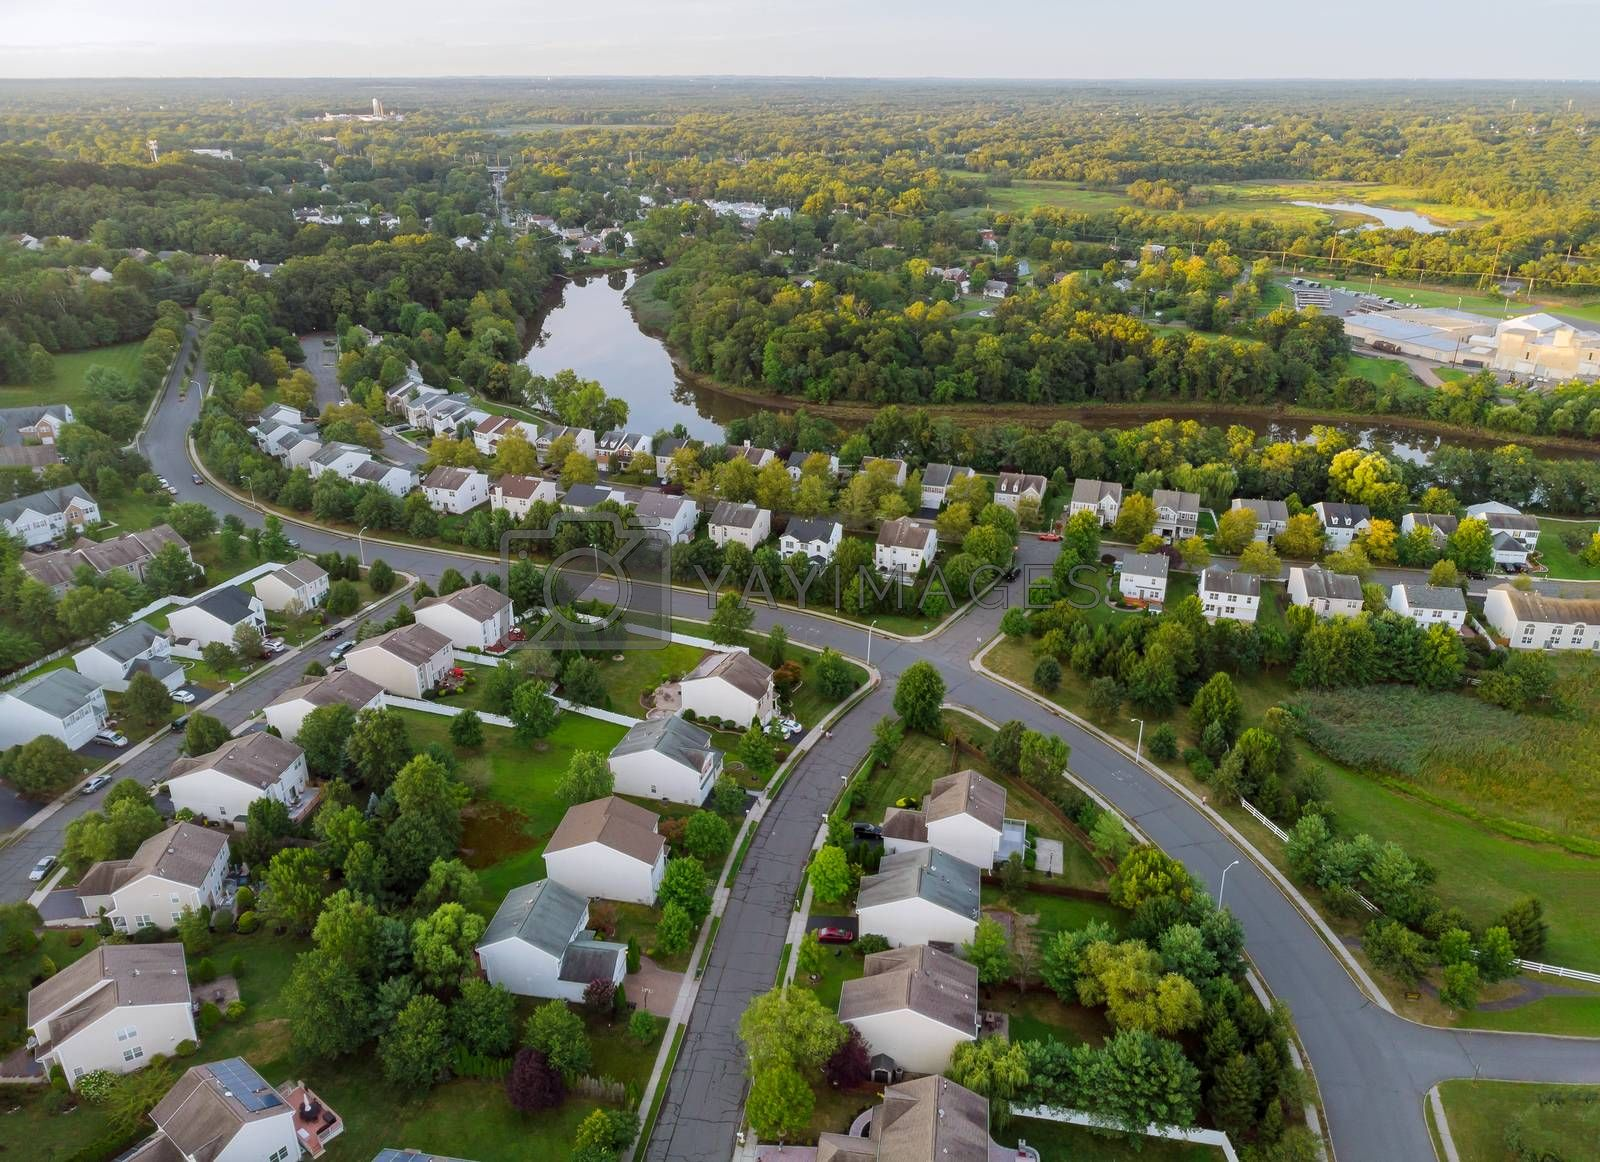 Landscape scenic aerial view of a suburban settlement in USA with detached houses